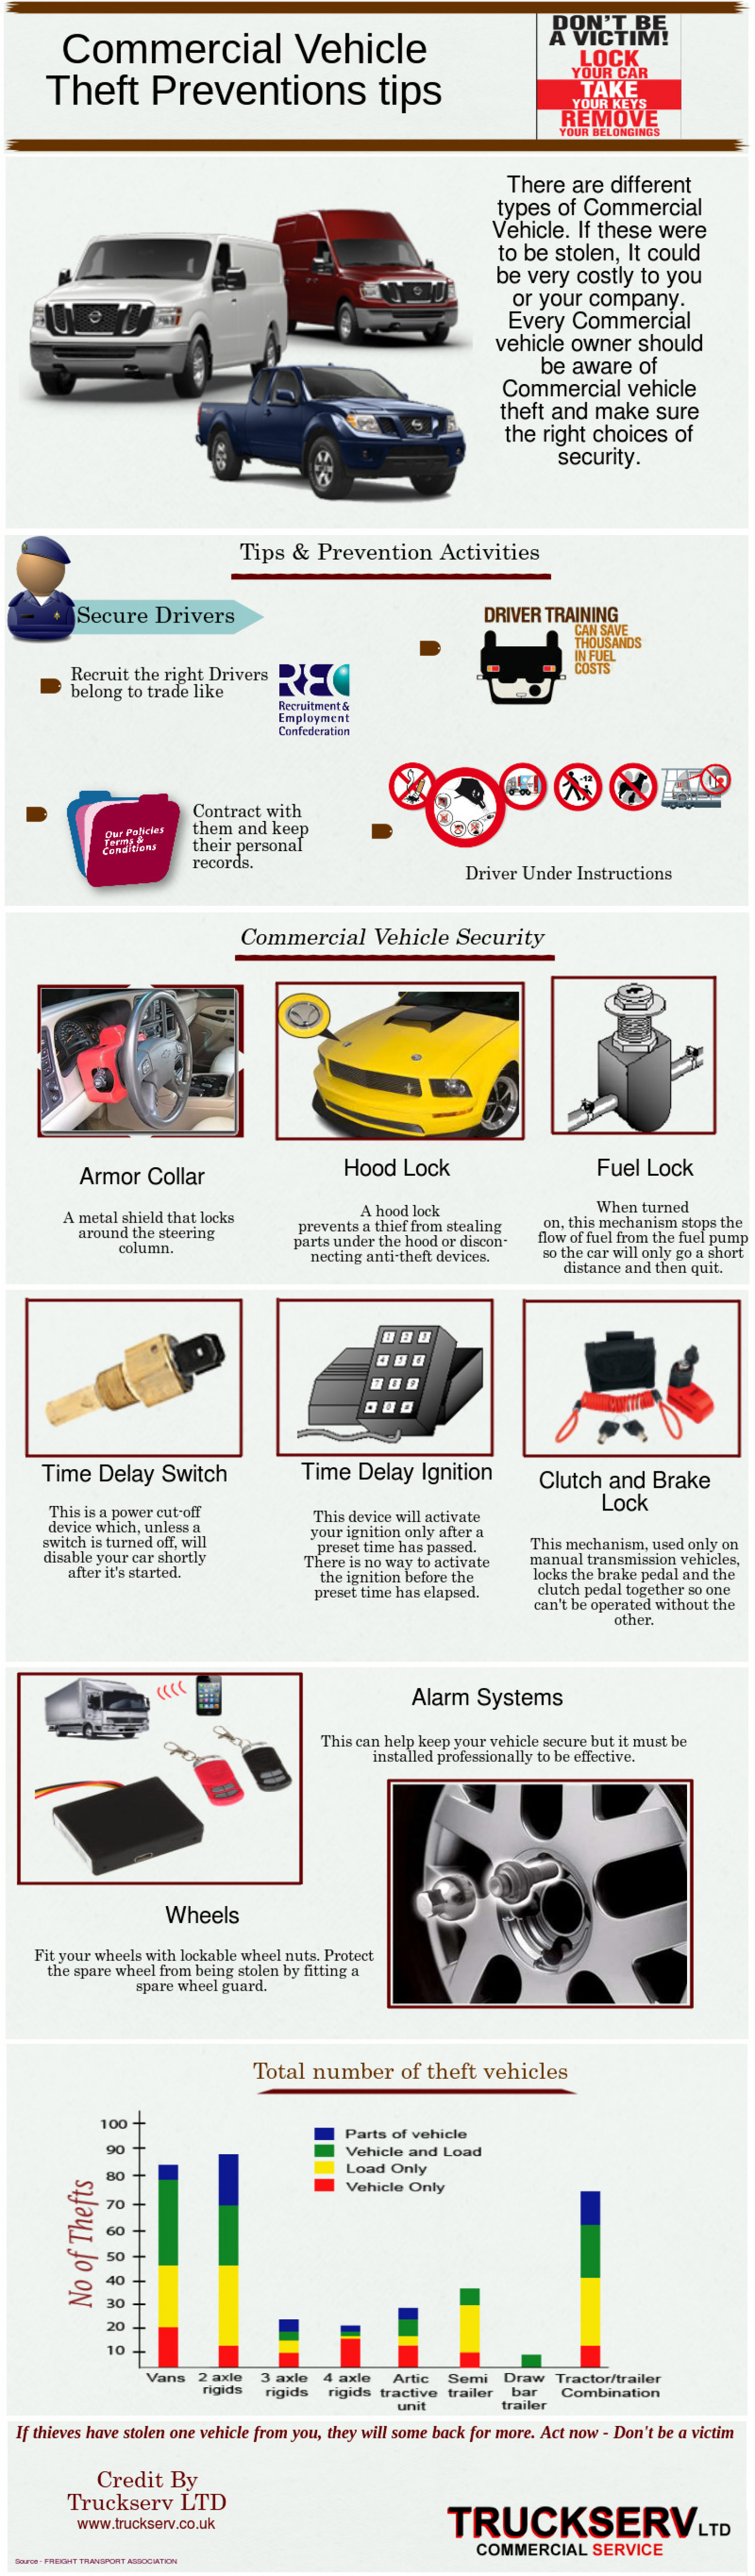 Commercial Vehicle Theft Prevention Infographic